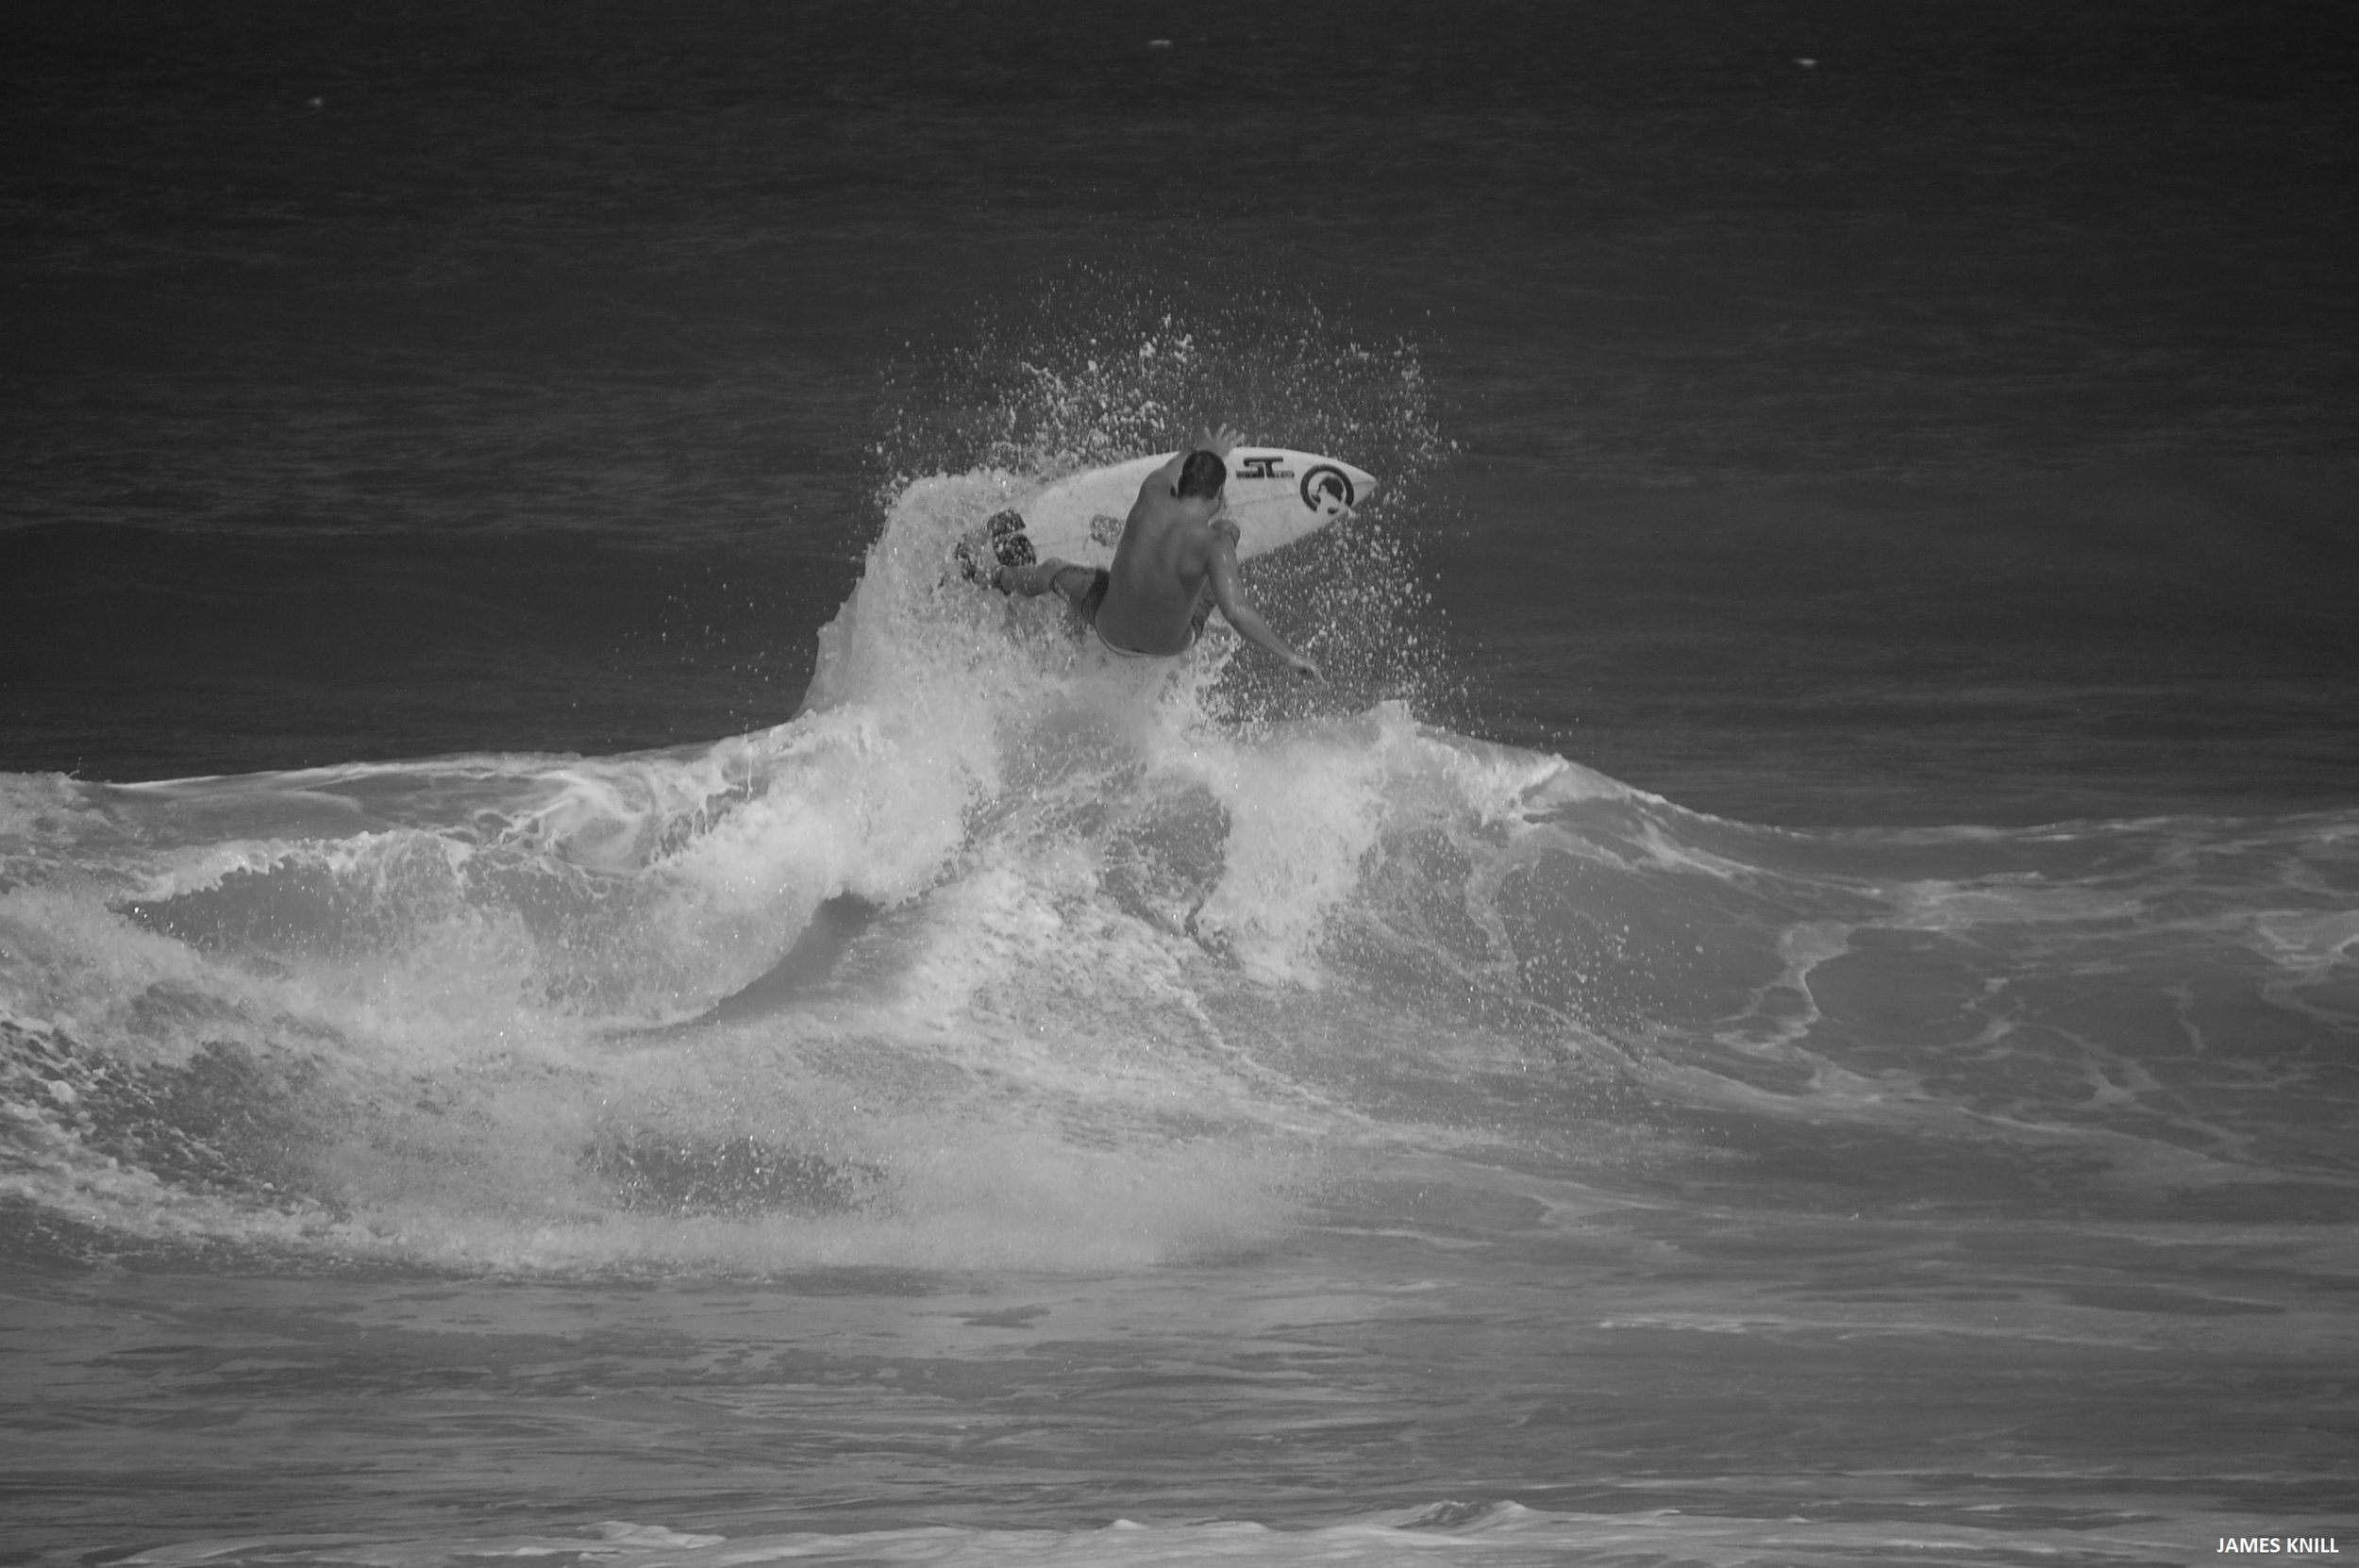 Evan Miller surfing in Martin County, Florida. Photography By James Knill